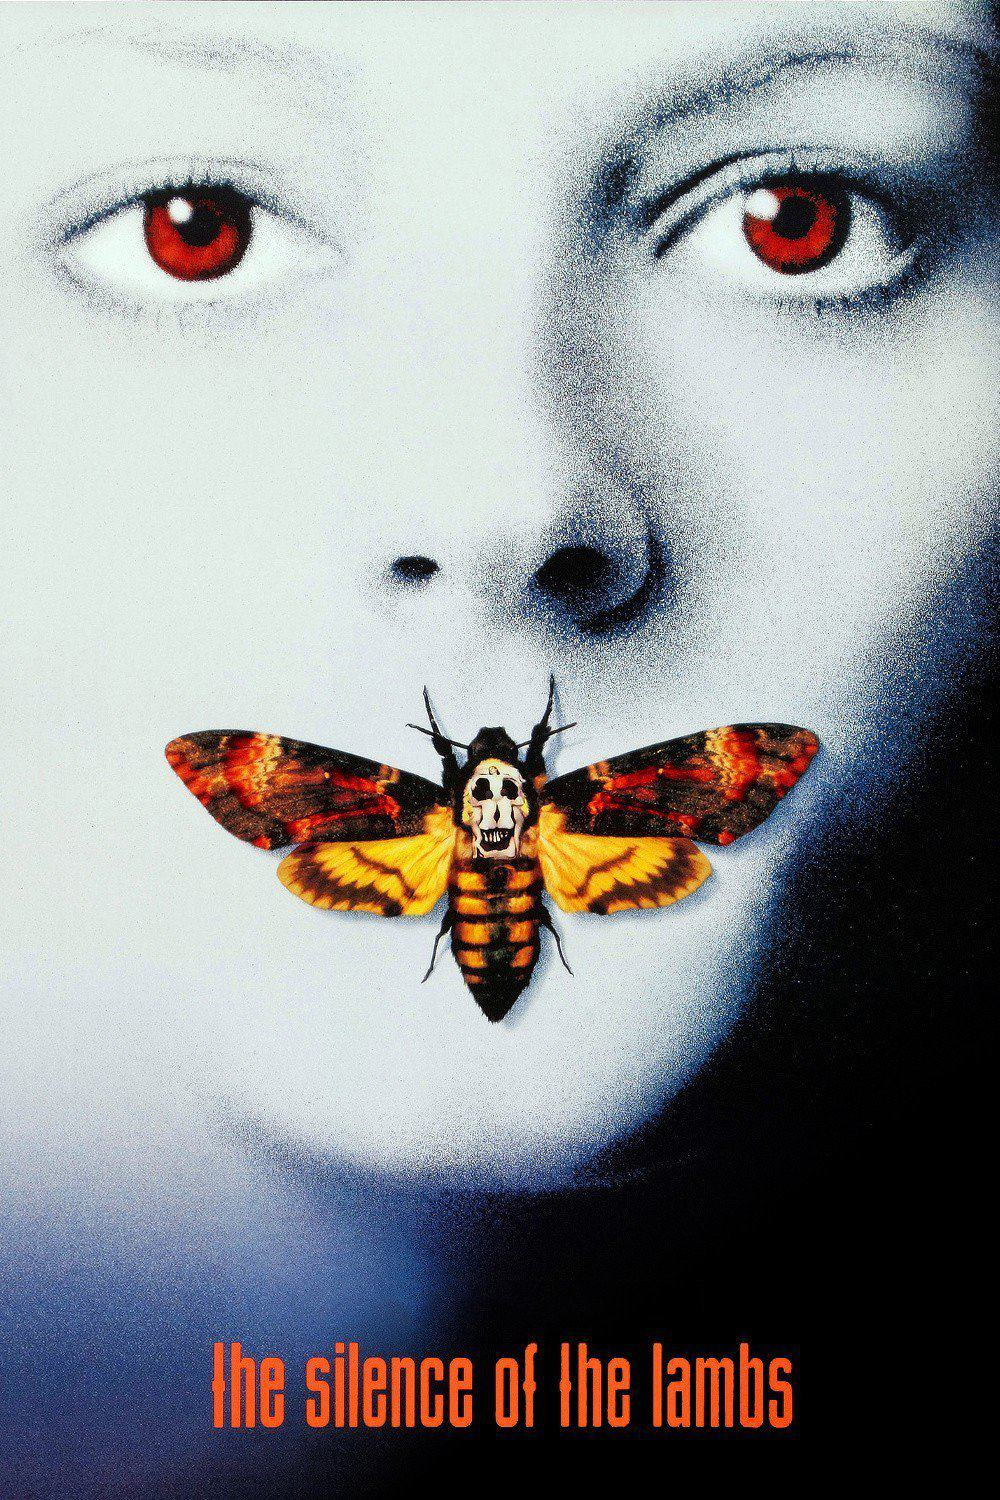 The Silence of the Lambs,1991